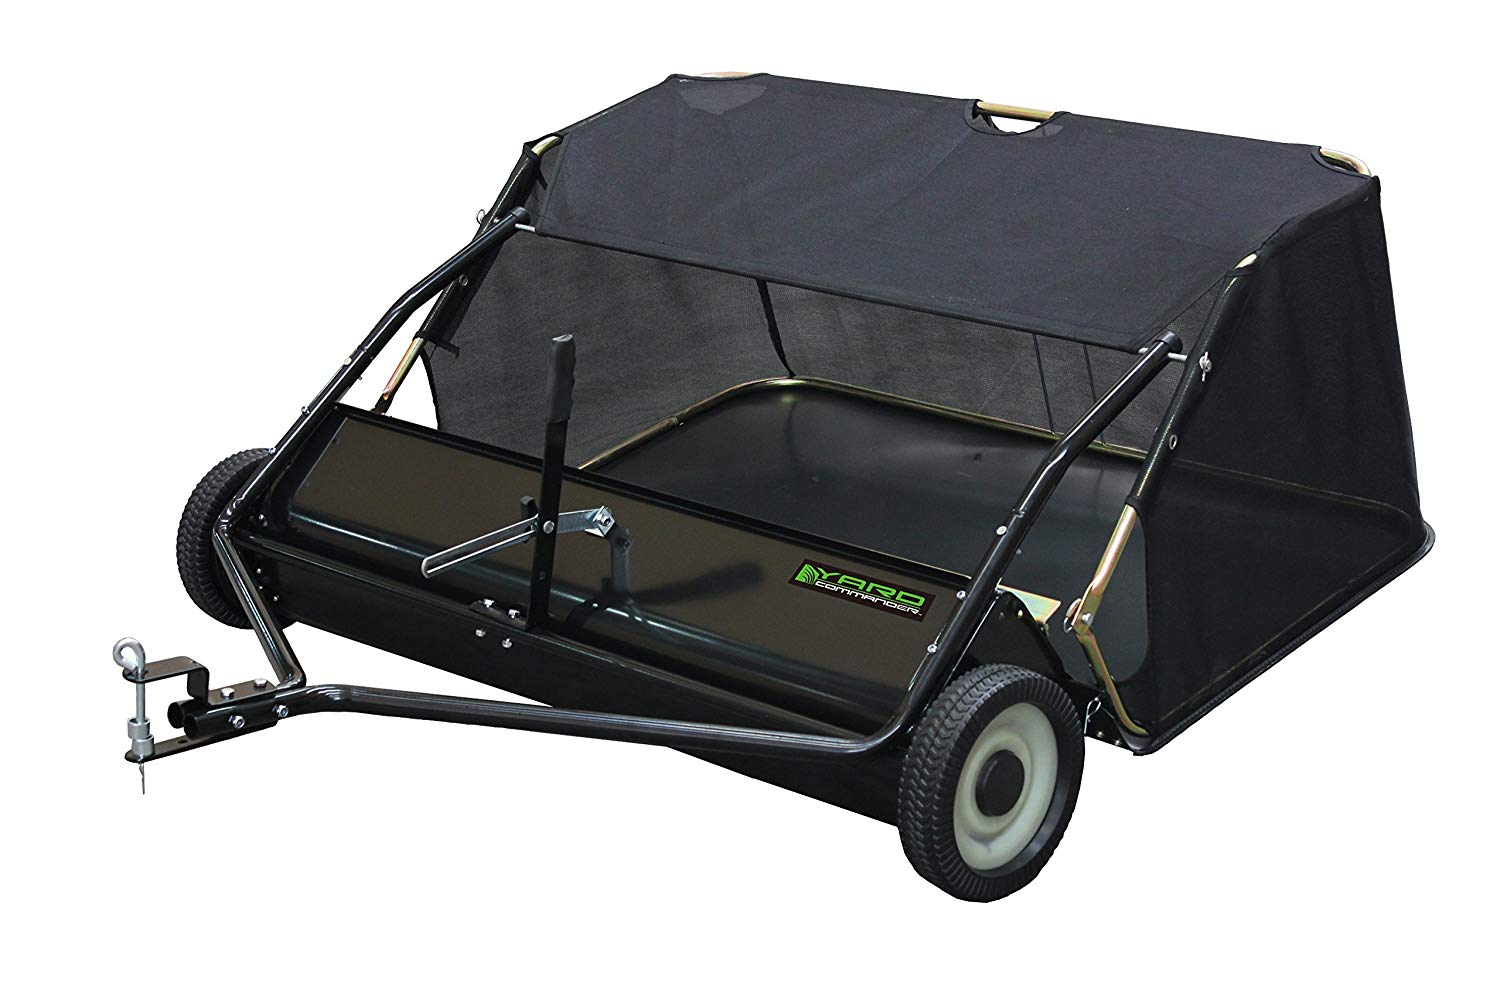 YARB Commander 48-inch Tow-Behind Lawn Sweeper